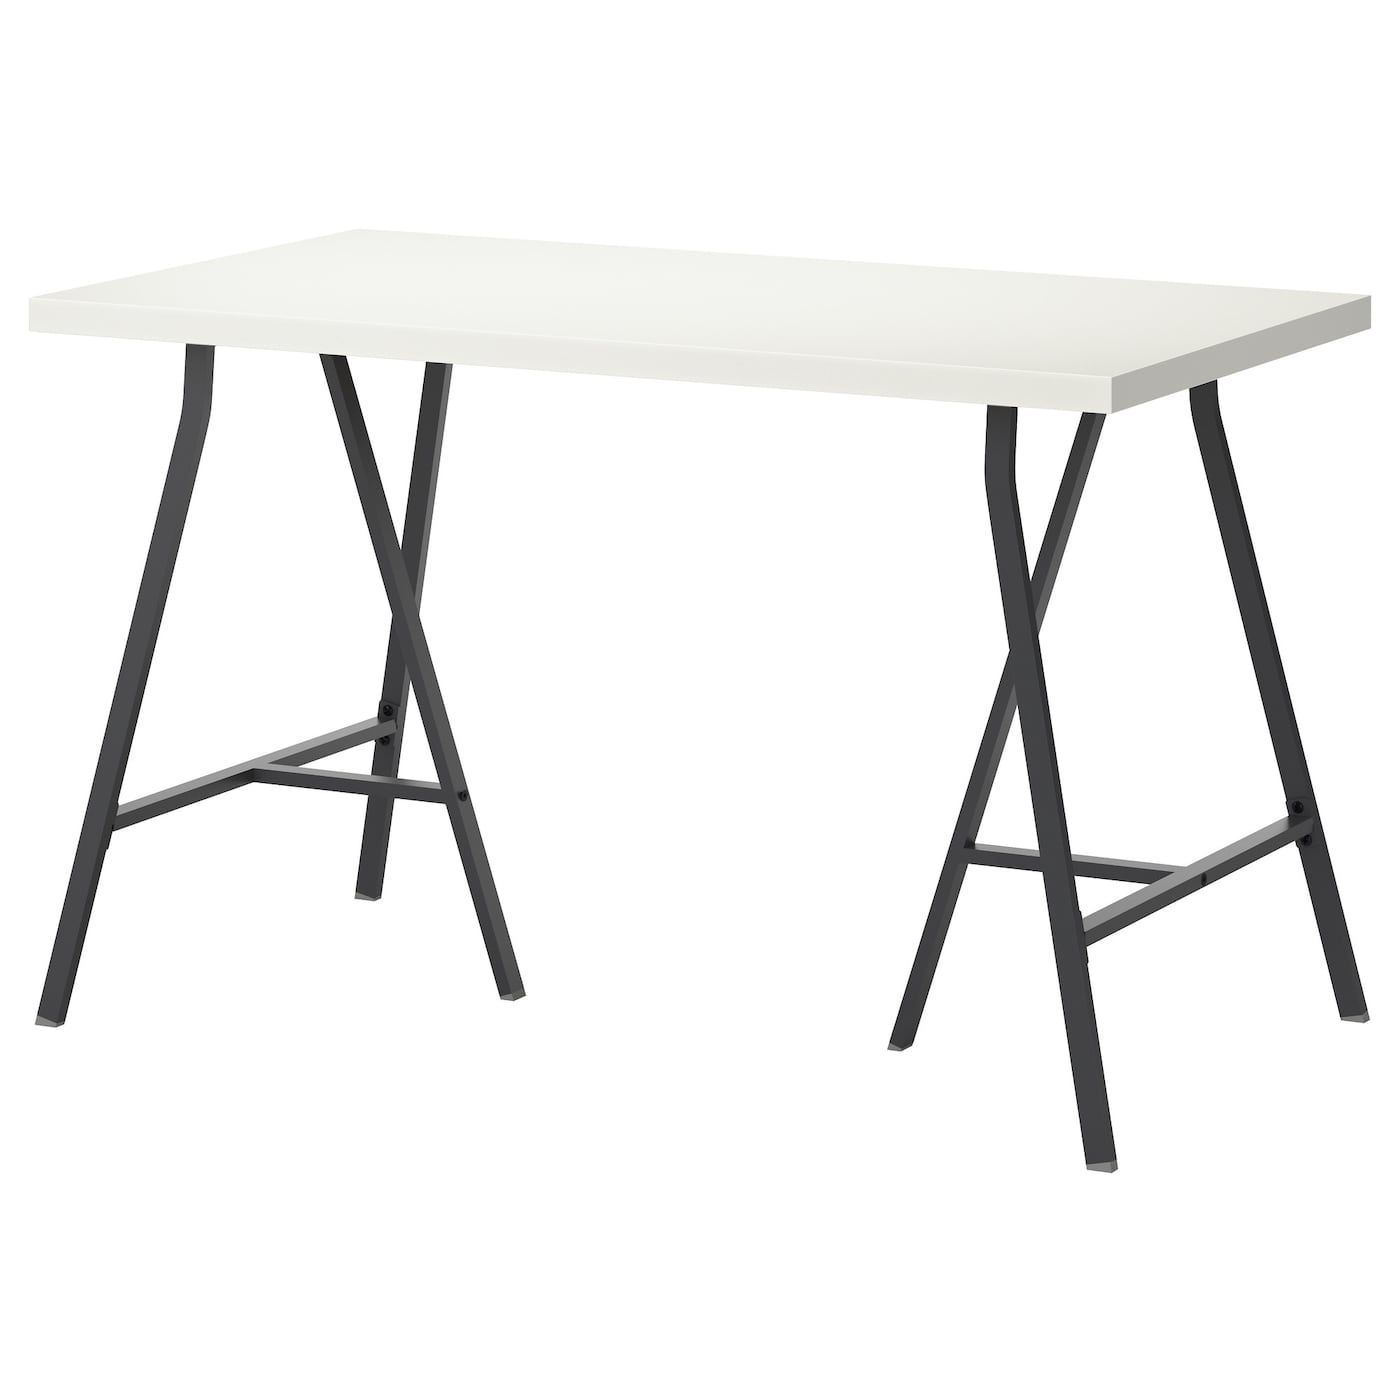 Linnmon Lerberg Table White Gray 47 1 4x23 5 8